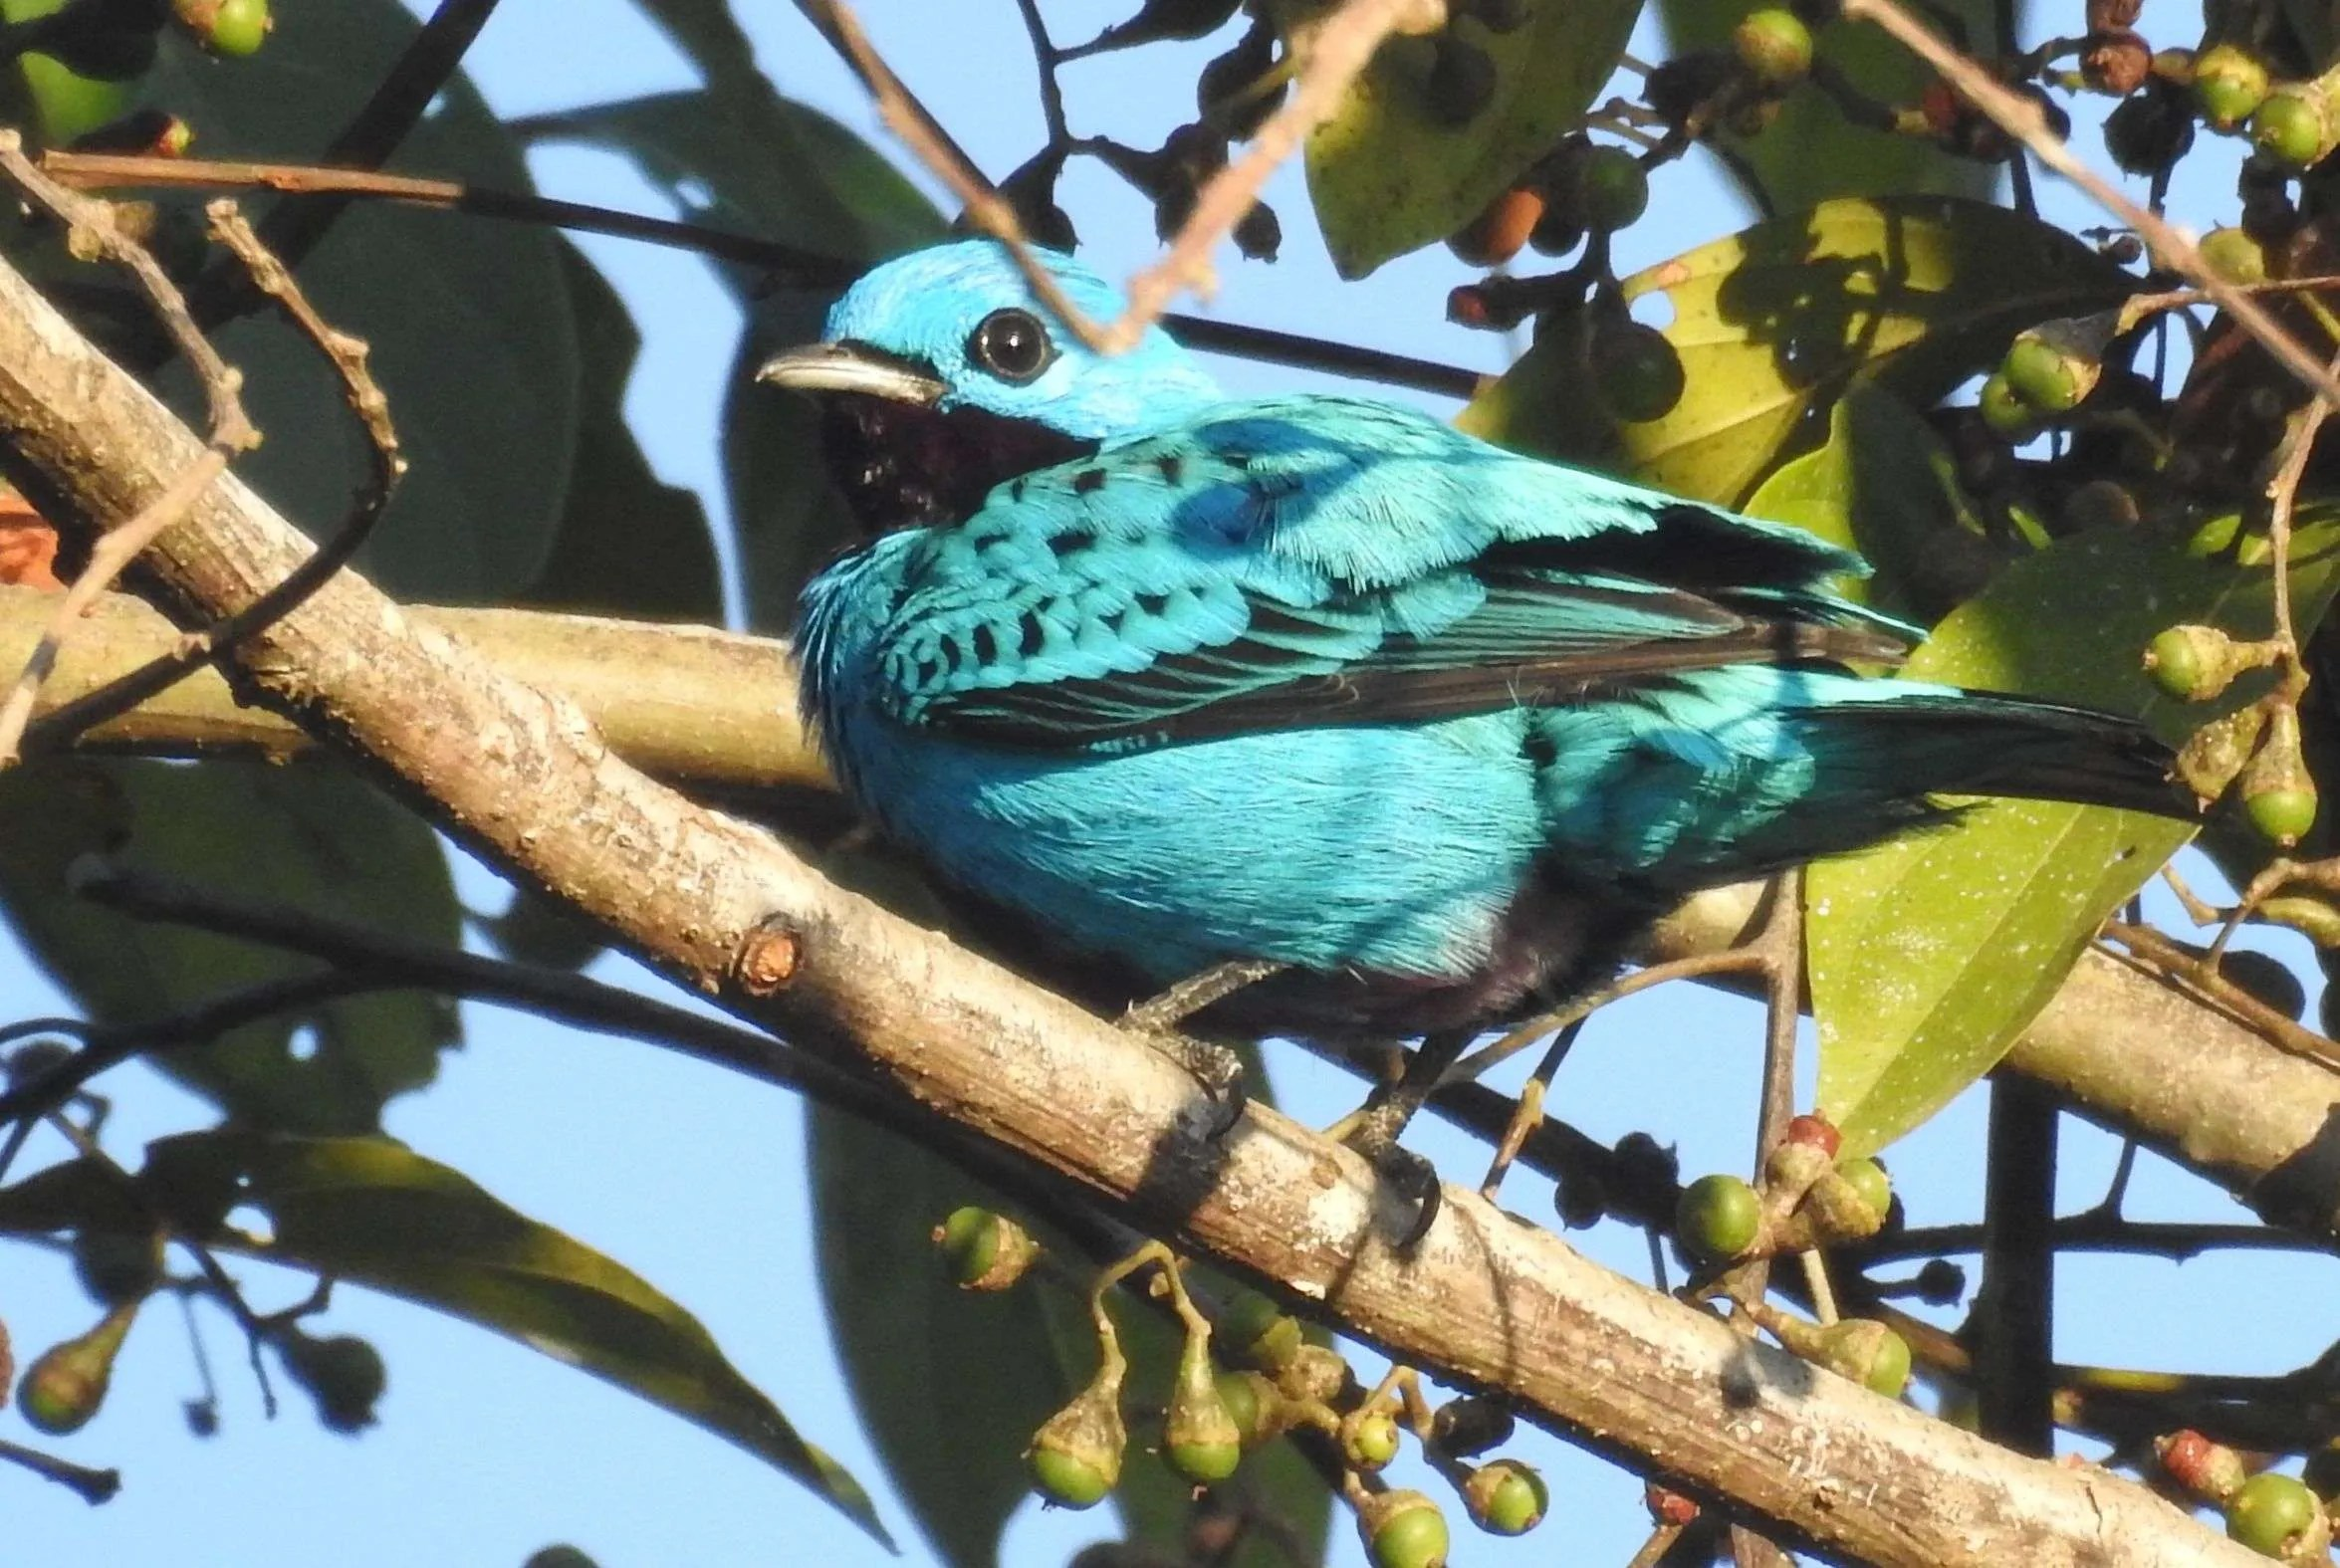 Blue Cotinga Birdwatching Spicies, Avistamiento de especies de aves Cotinga